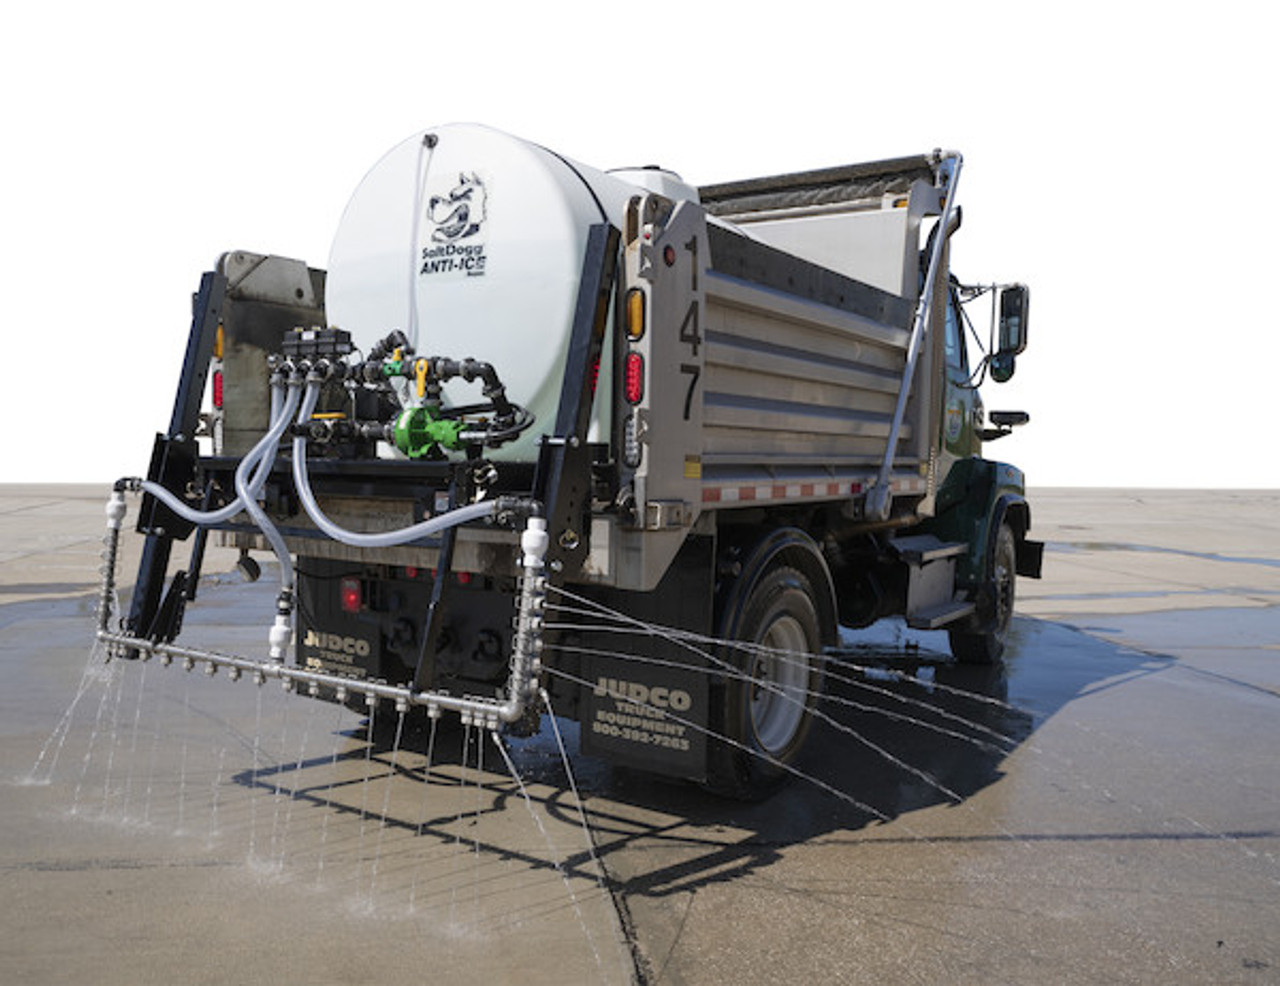 6192730 BUYERS SALTDOGG 1065 Gallon Hydraulic Anti-Ice System With One-Lane Spray Bar And Manual Application Rate Control  #6